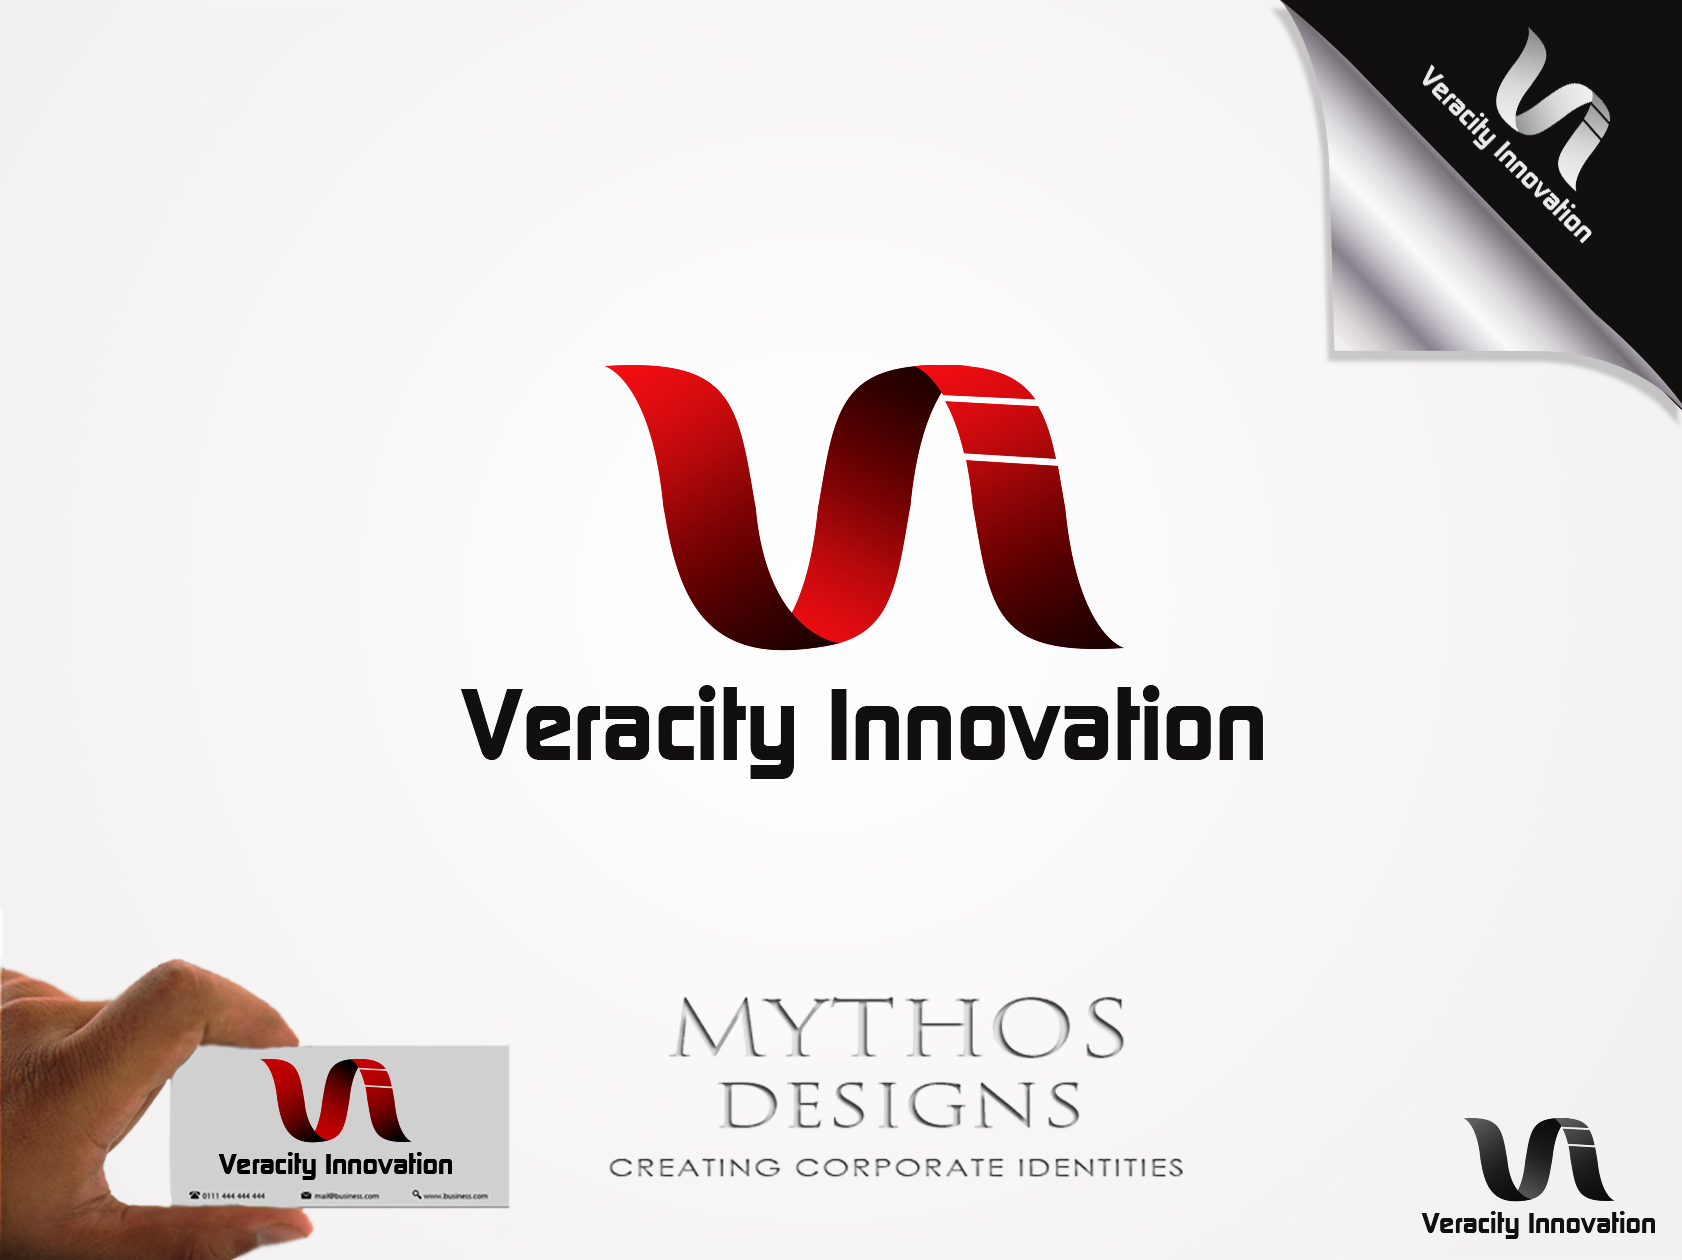 Logo Design by Mythos Designs - Entry No. 255 in the Logo Design Contest Creative Logo Design for Veracity Innovation, LLC.